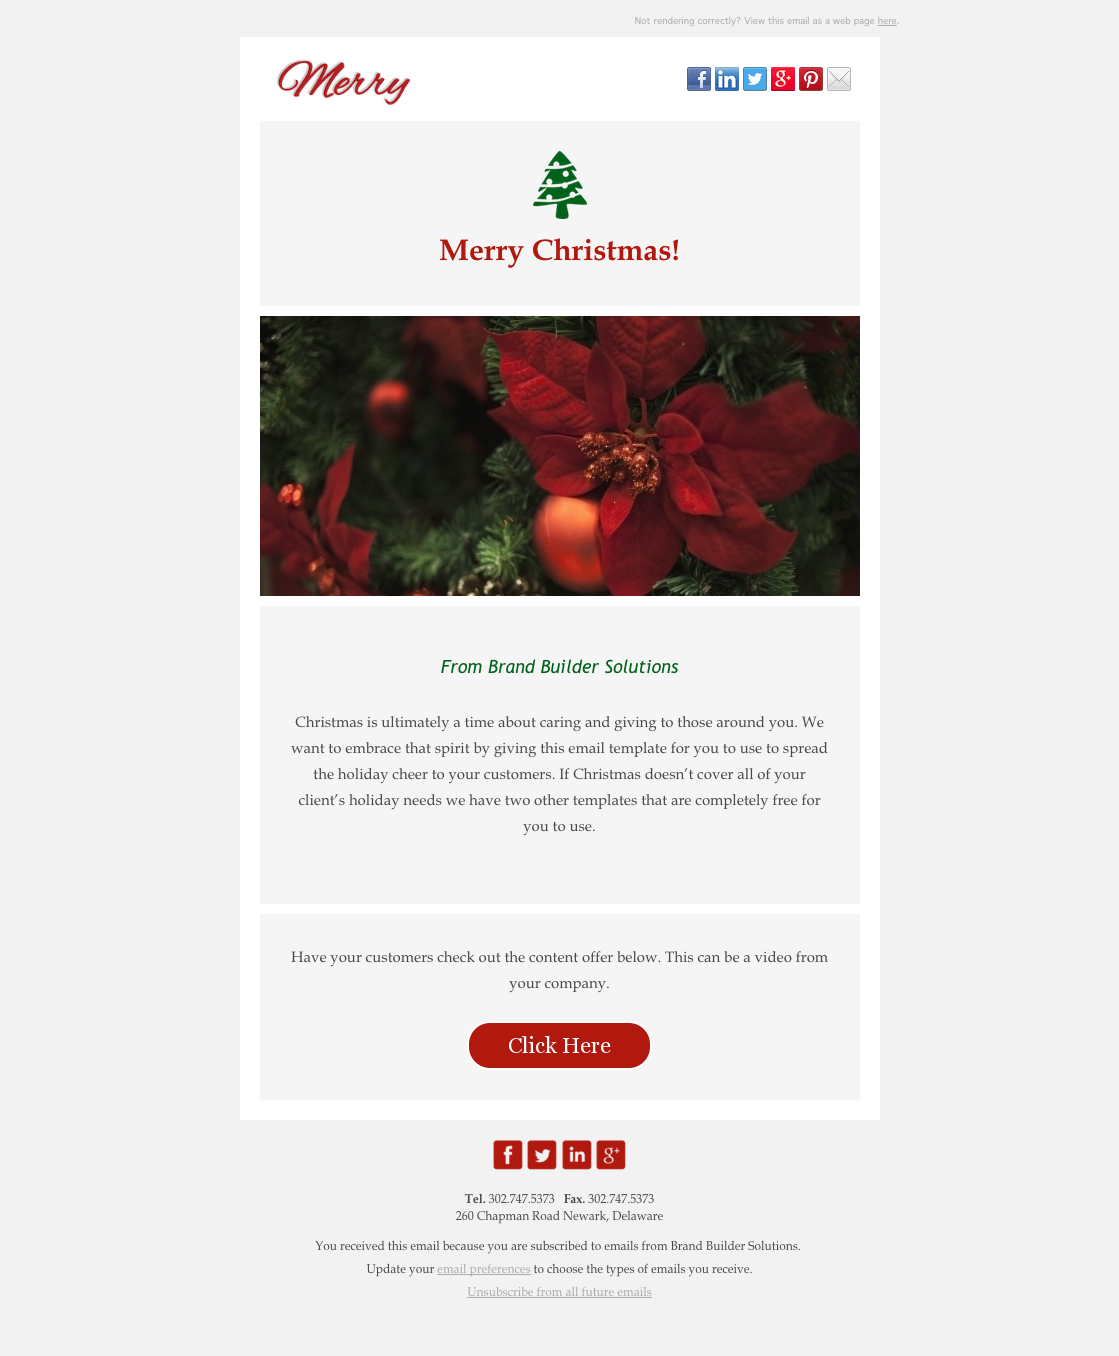 merry christmas email hubspot template - Merry Christmas Email